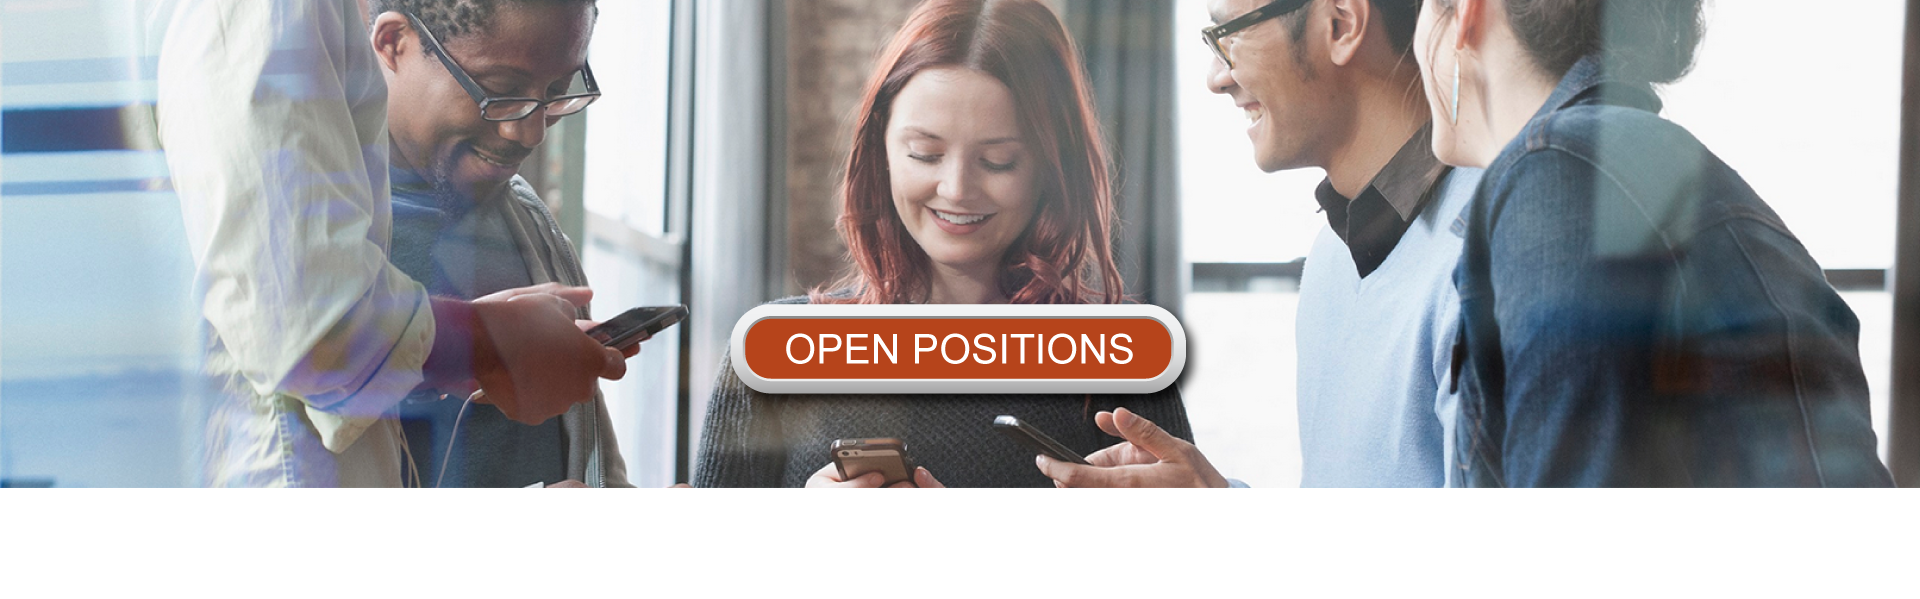 Open Positions at Imaging Healthcare Specialists